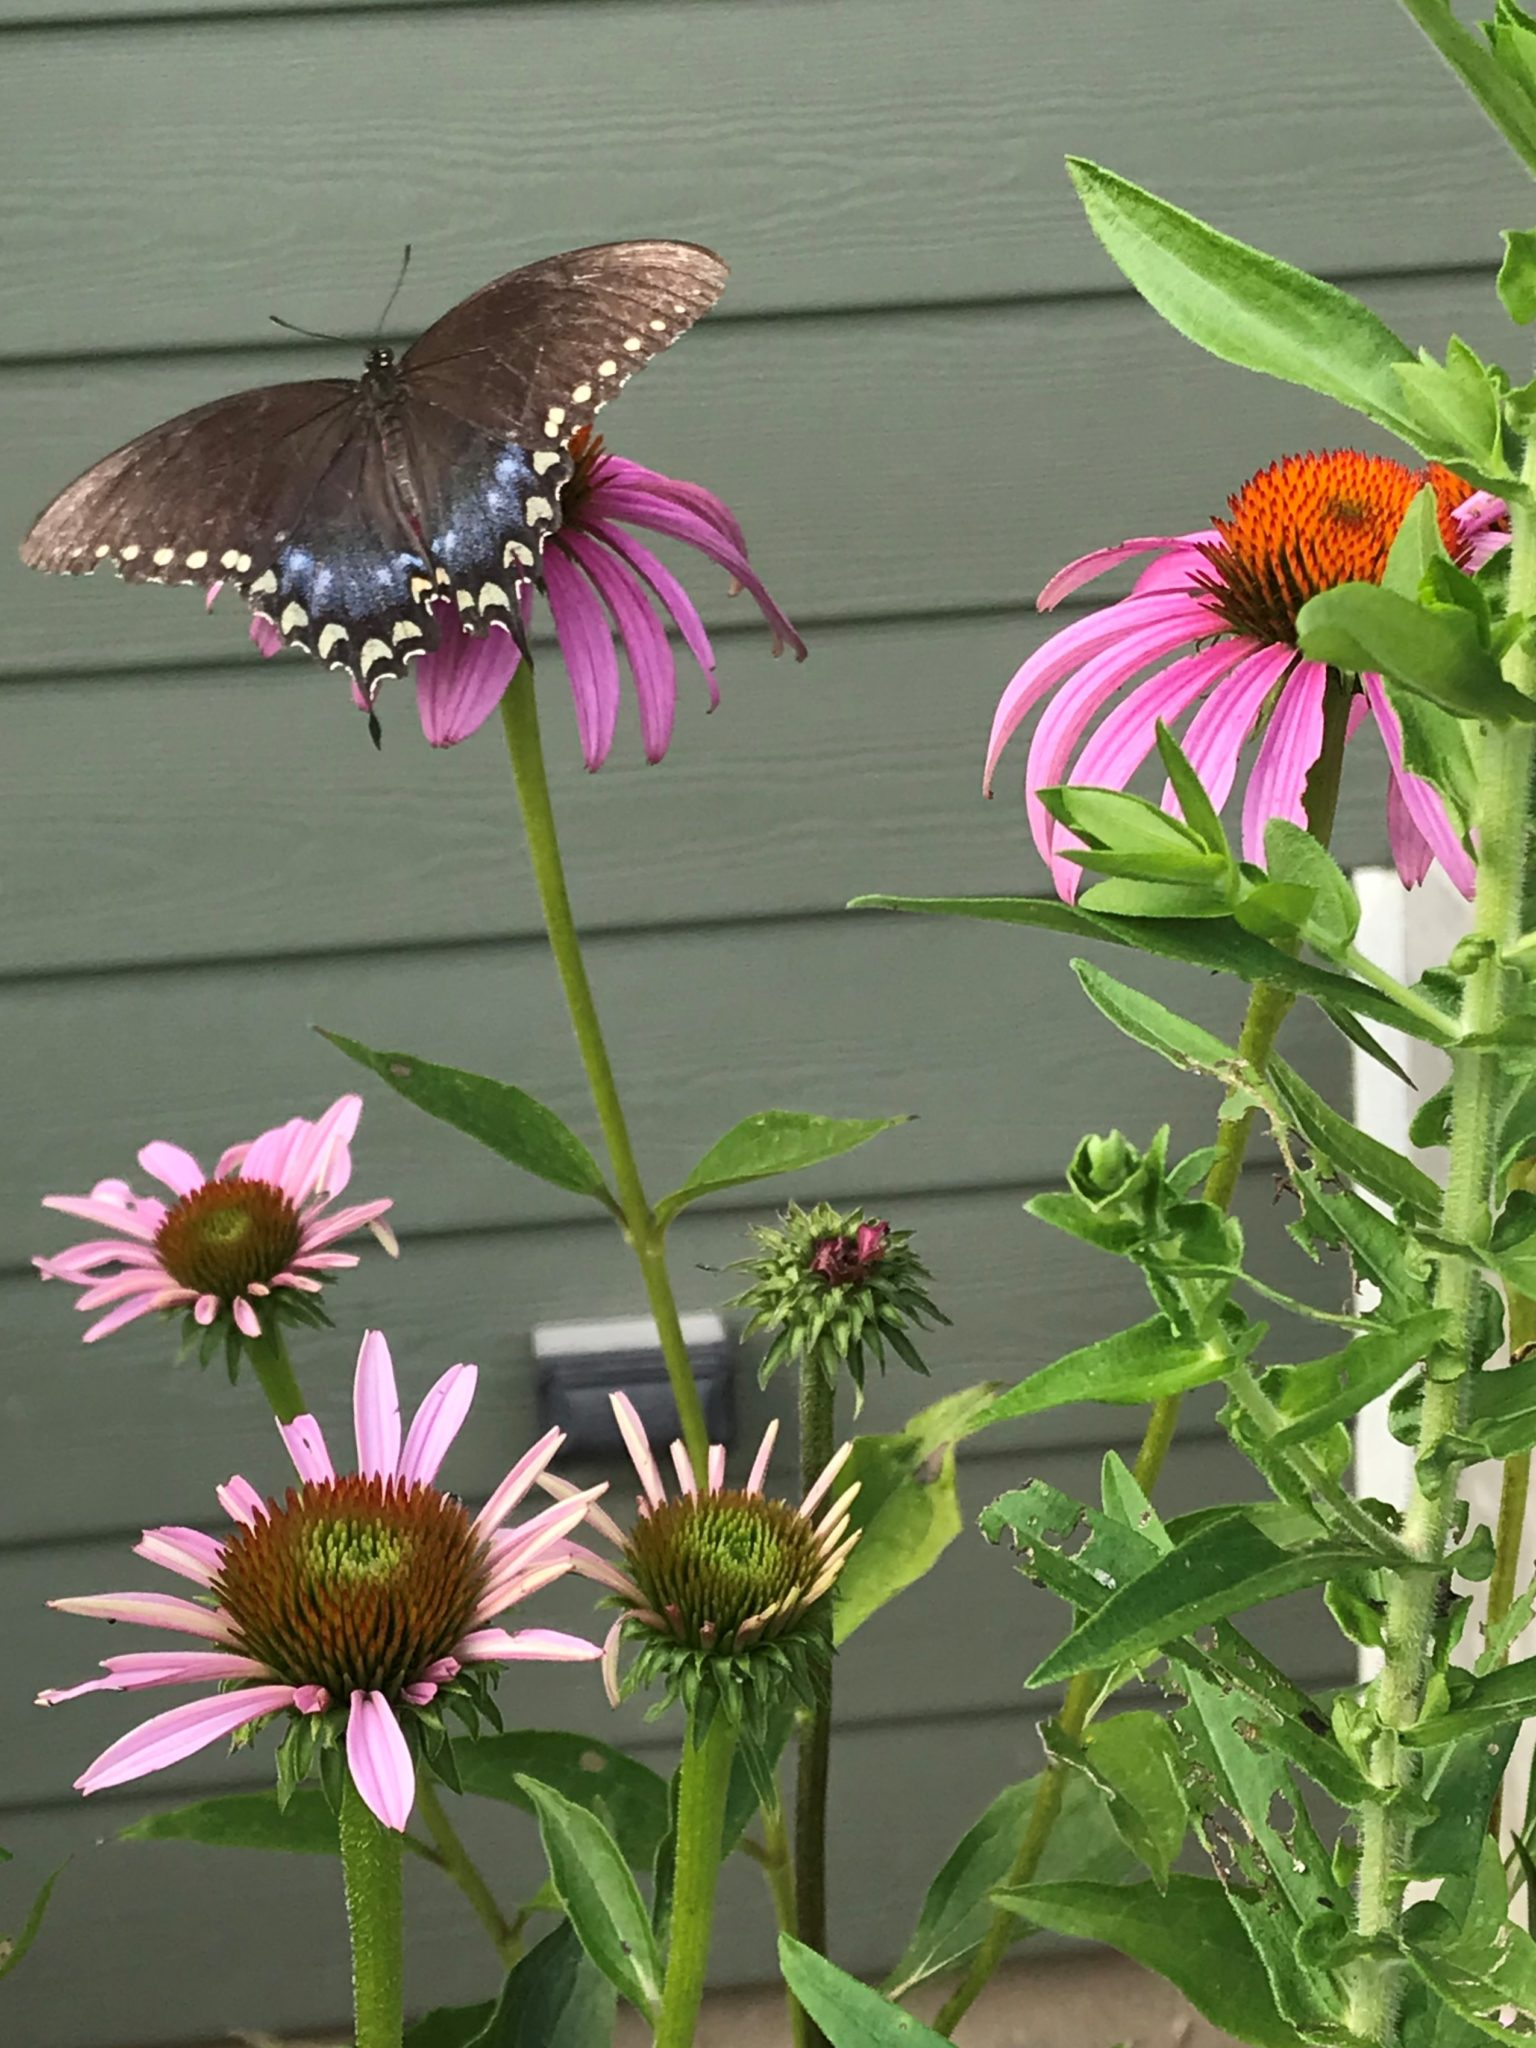 Parsnip Swallowtail butterfly on a coneflower.